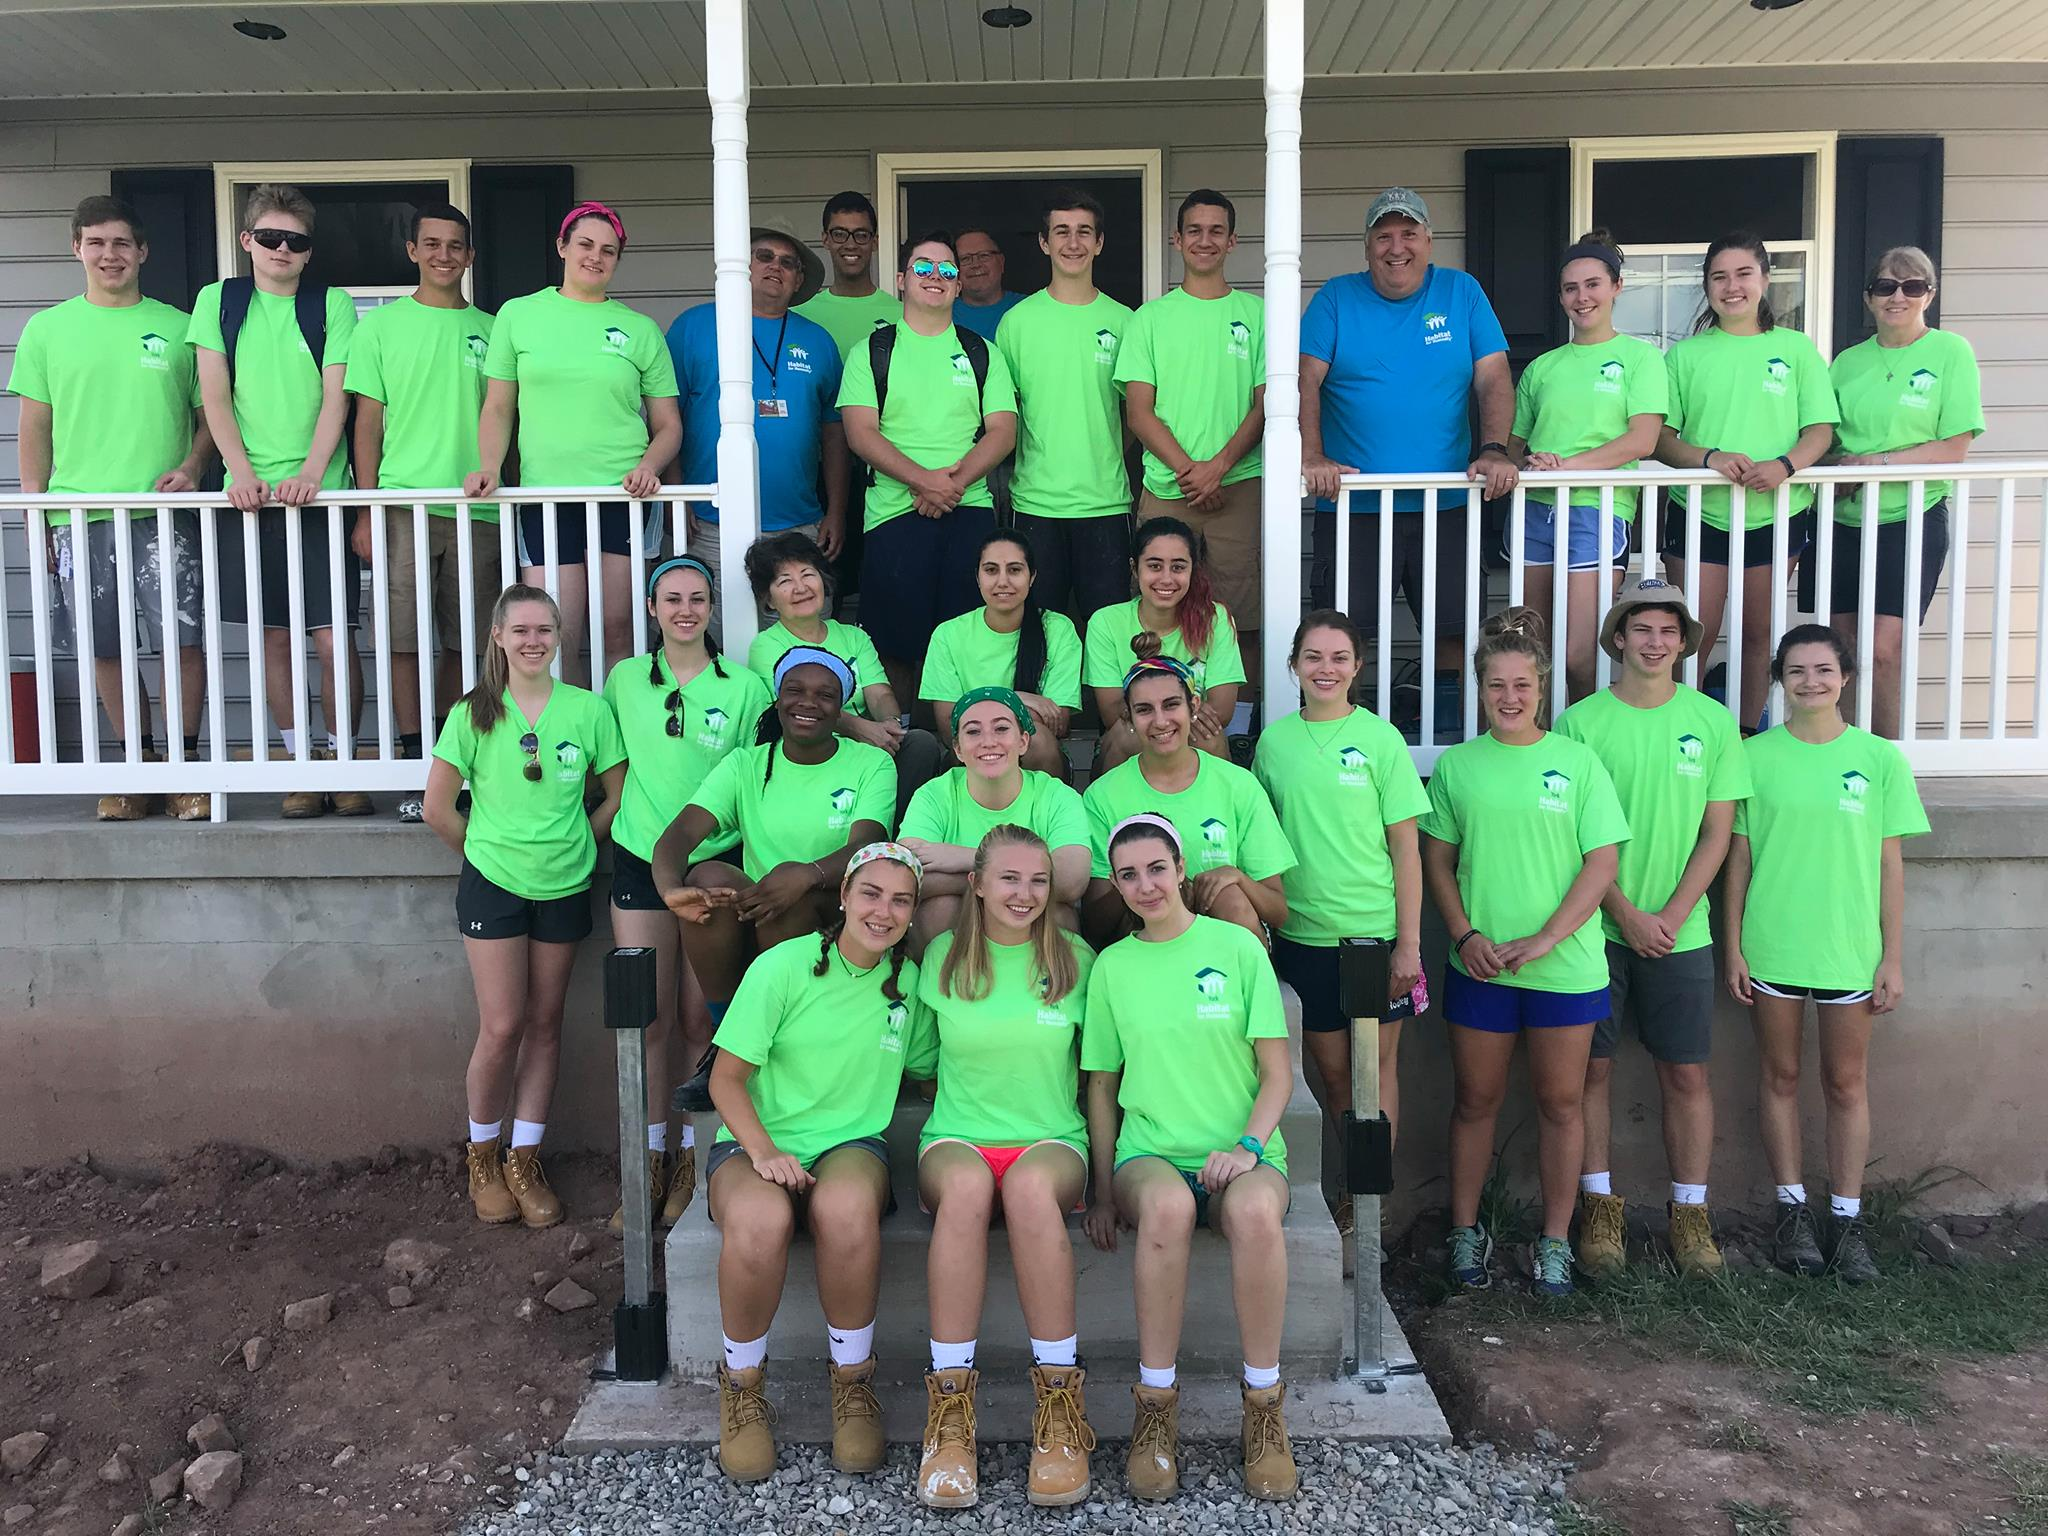 Habitat for Humanity Work Camp